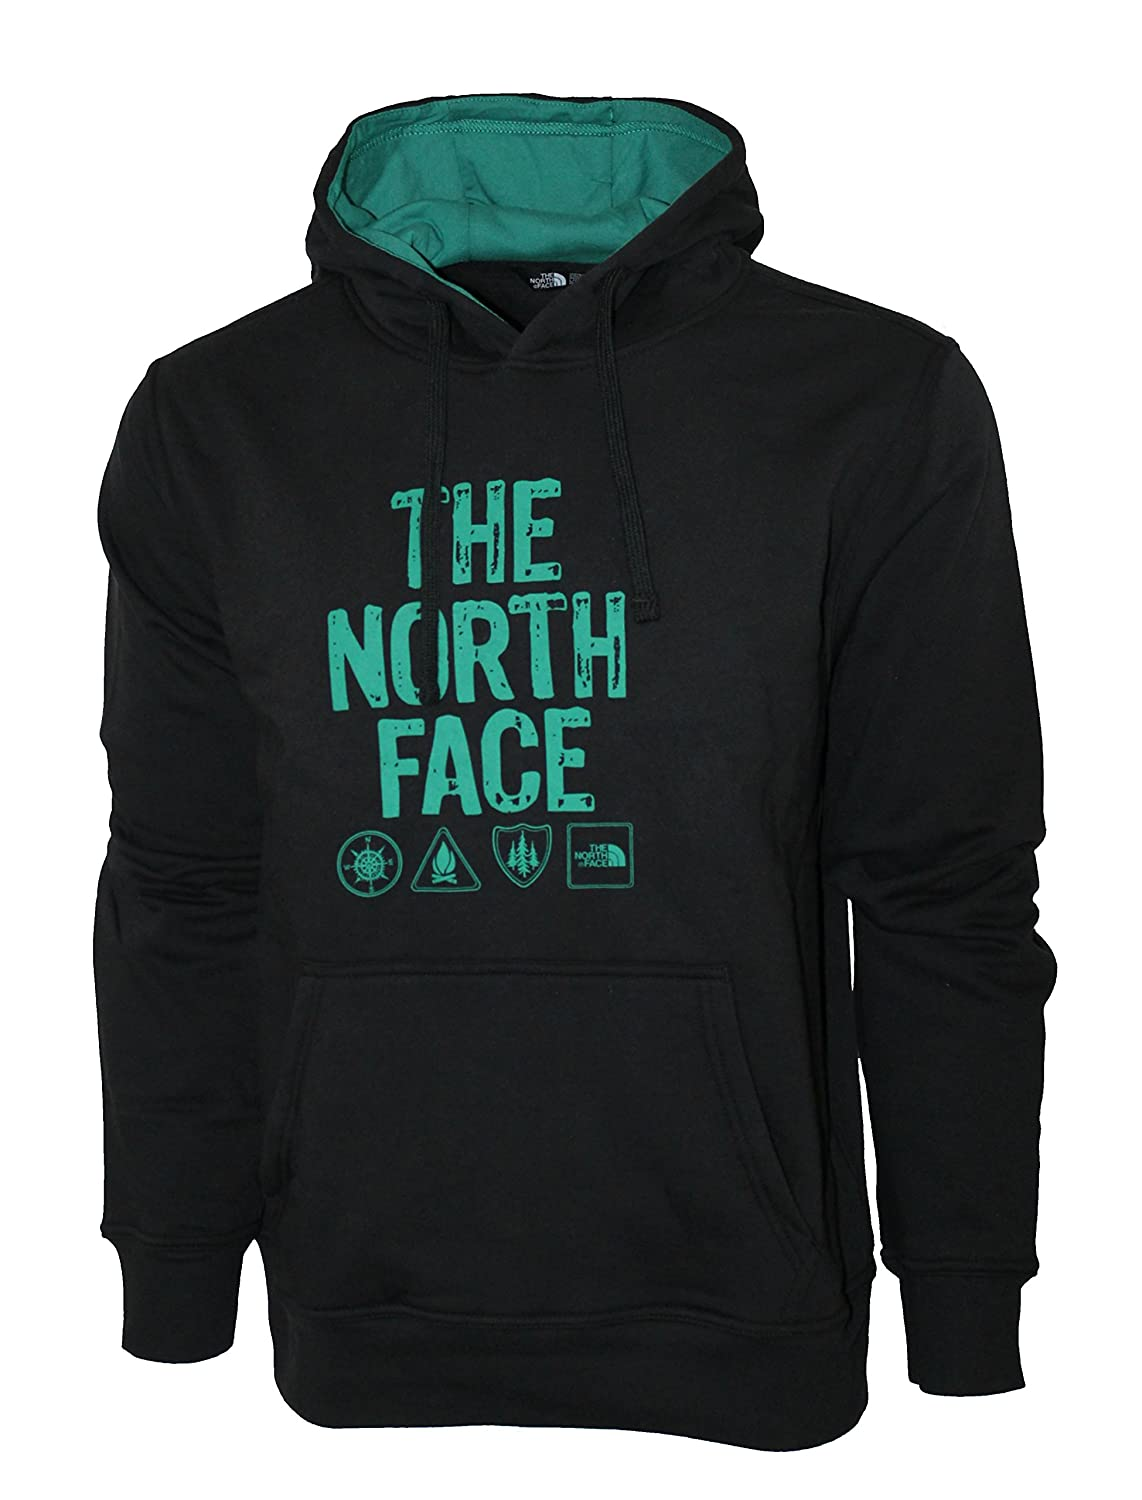 The North Face SWEATER メンズ B07D1DC6N9   Small